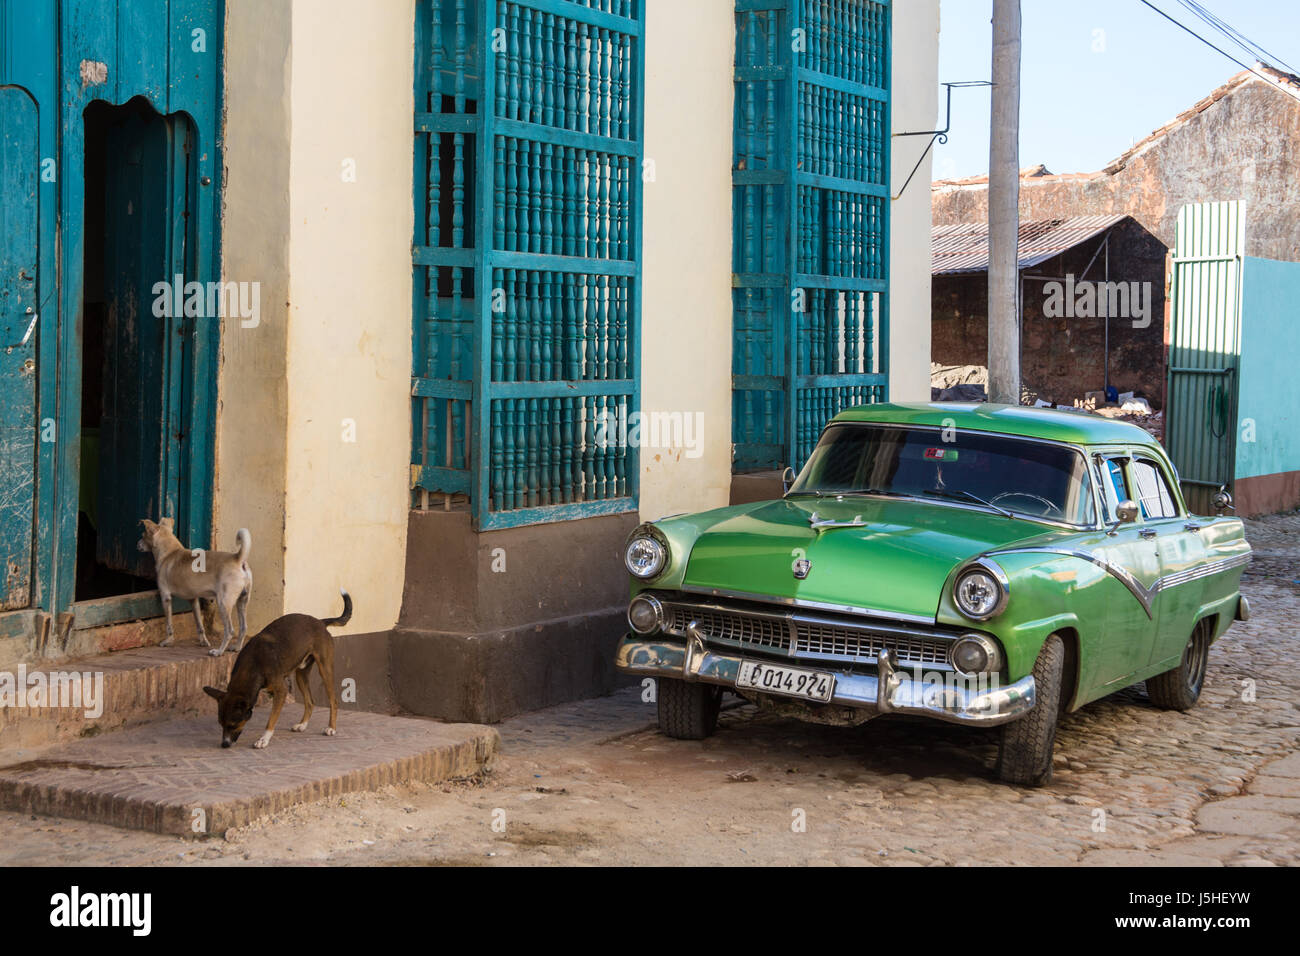 Classic american car on the street in Trinidad, Cuba - Stock Image